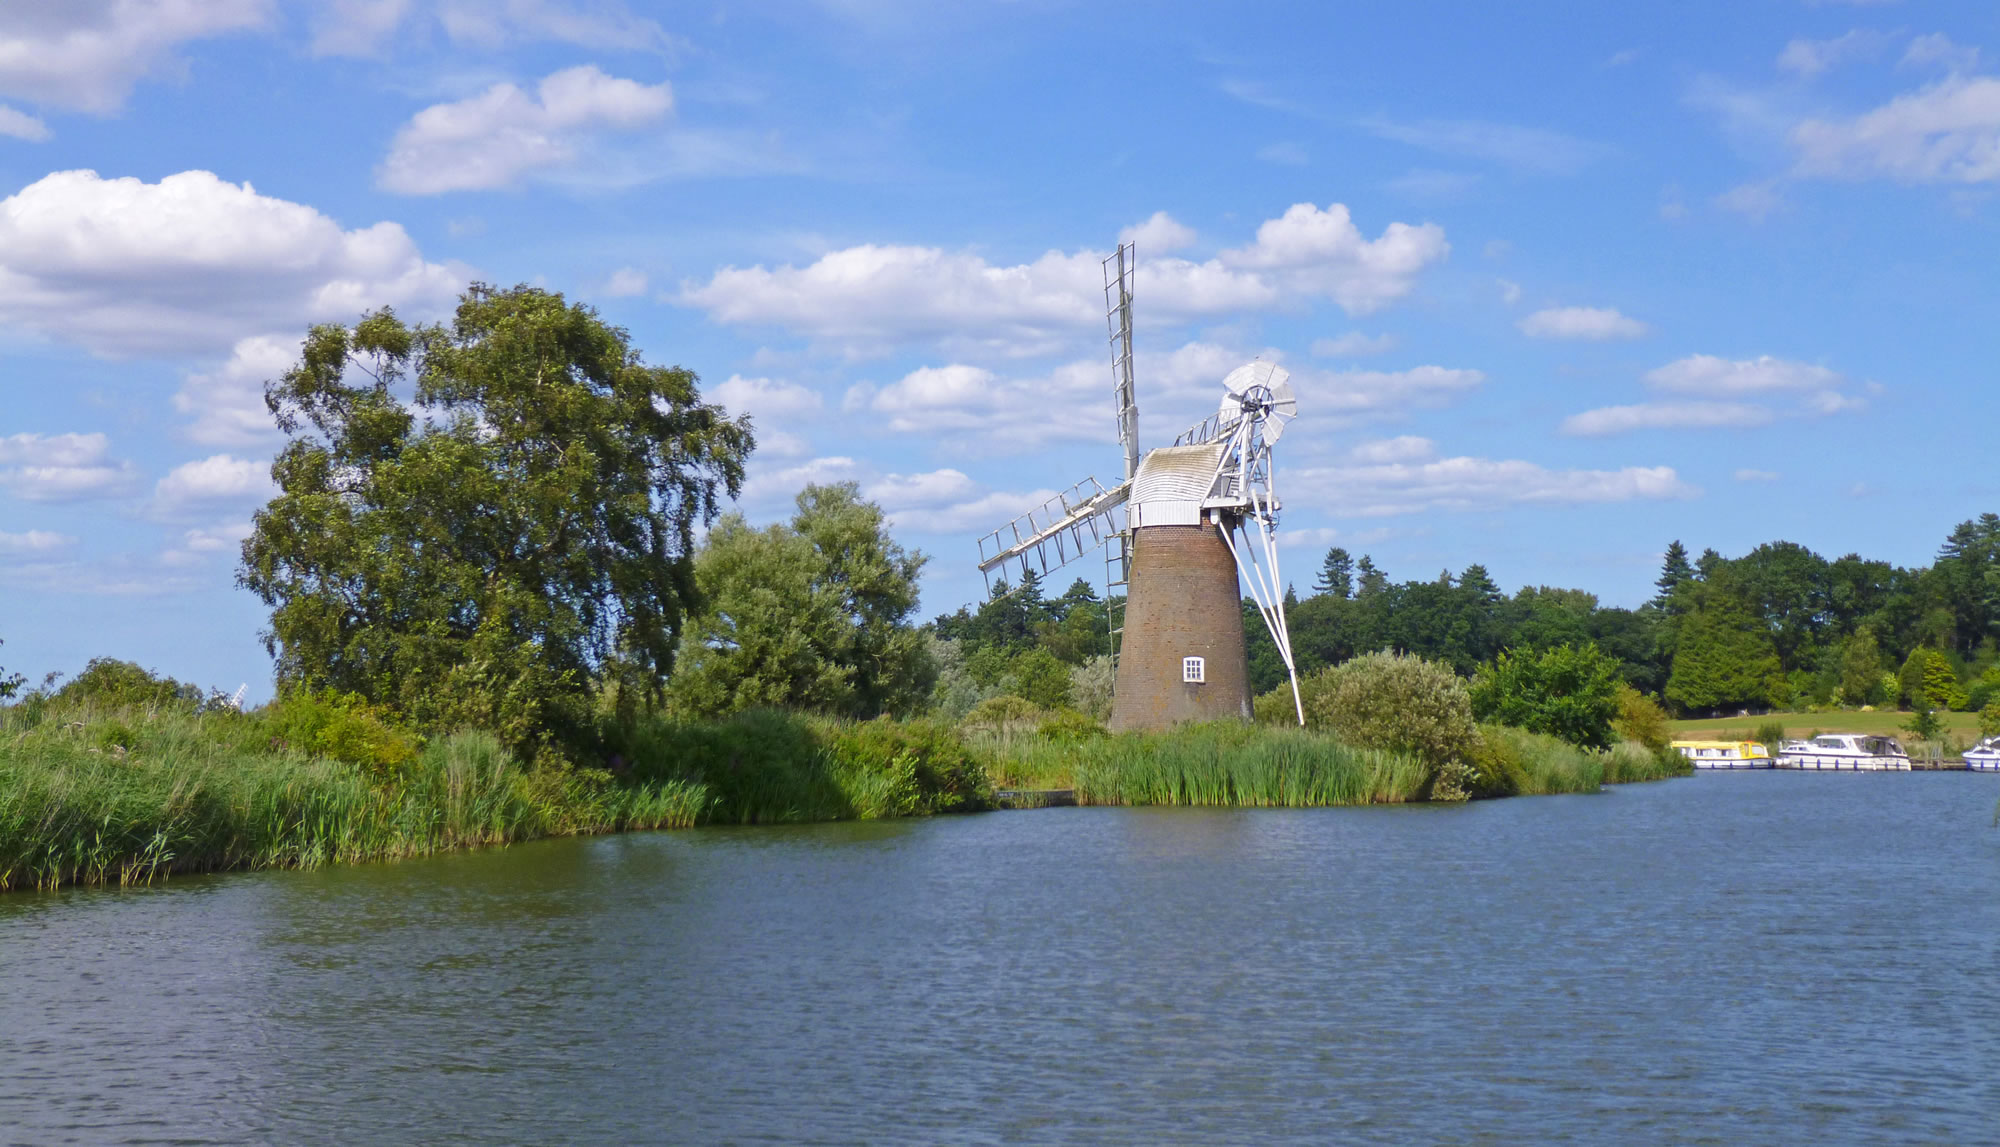 How Hill Norfolk Broads Including How Hill Study Centre